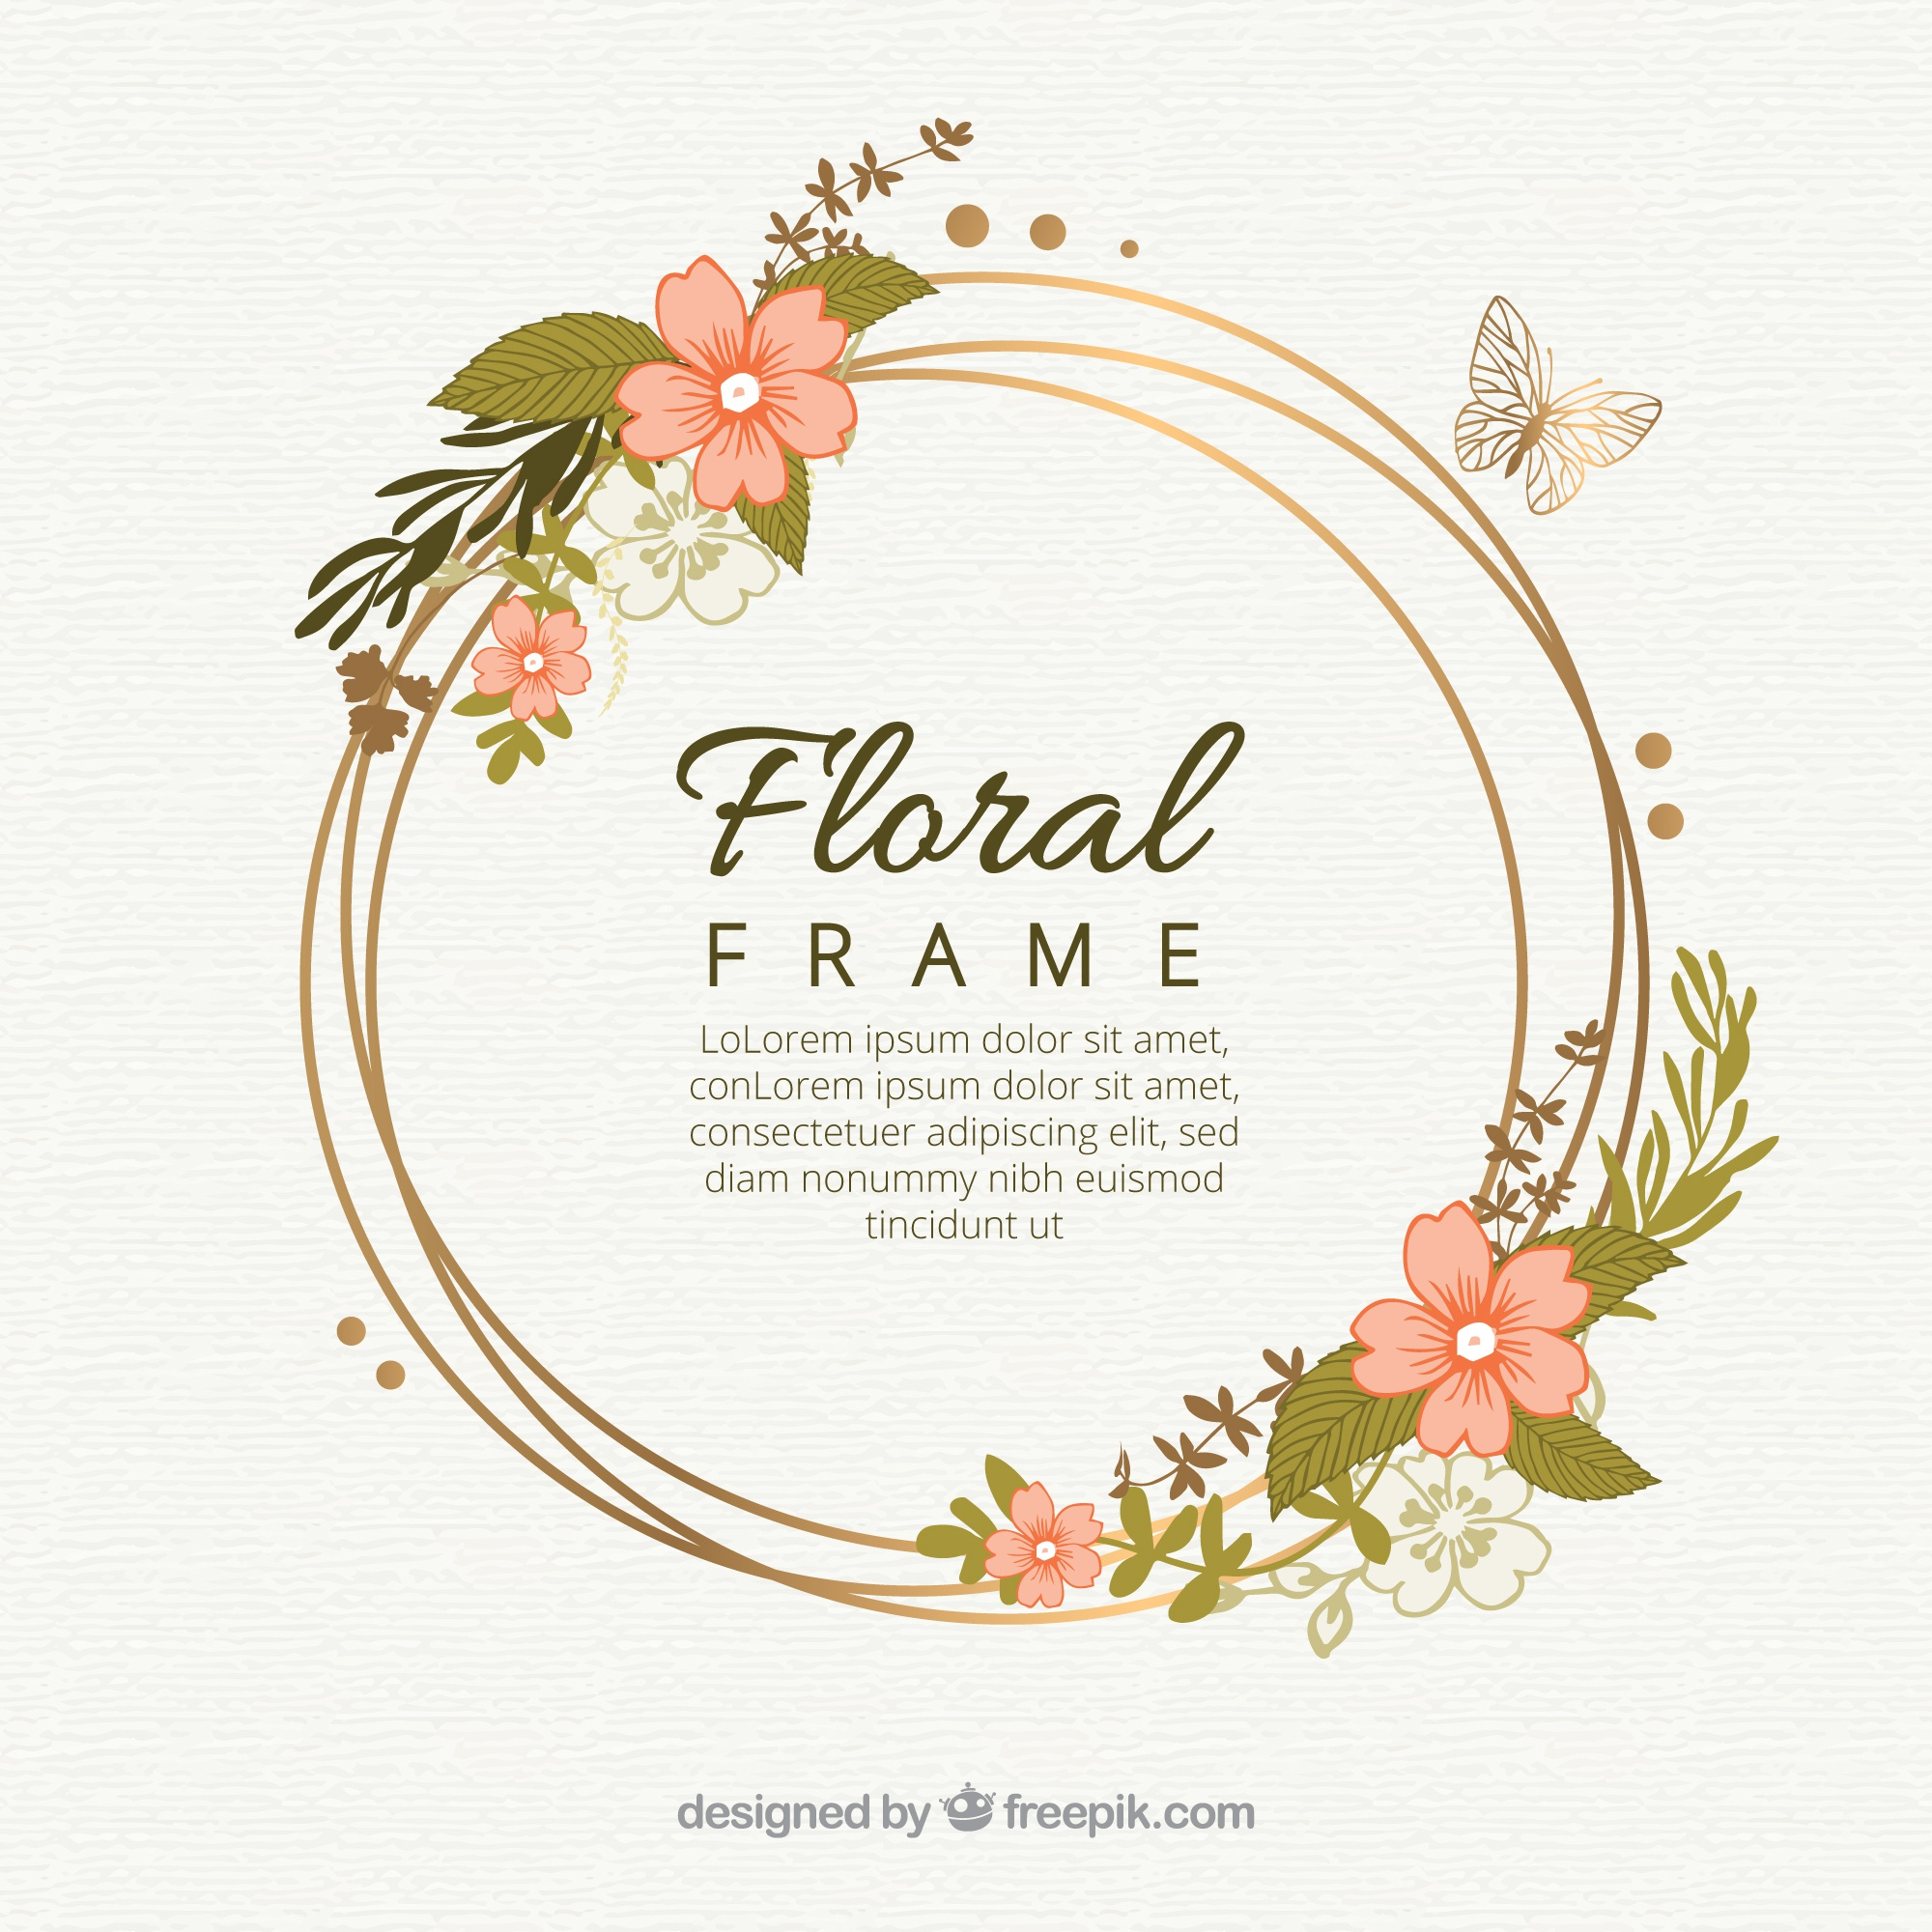 Original hand drawn floral frame